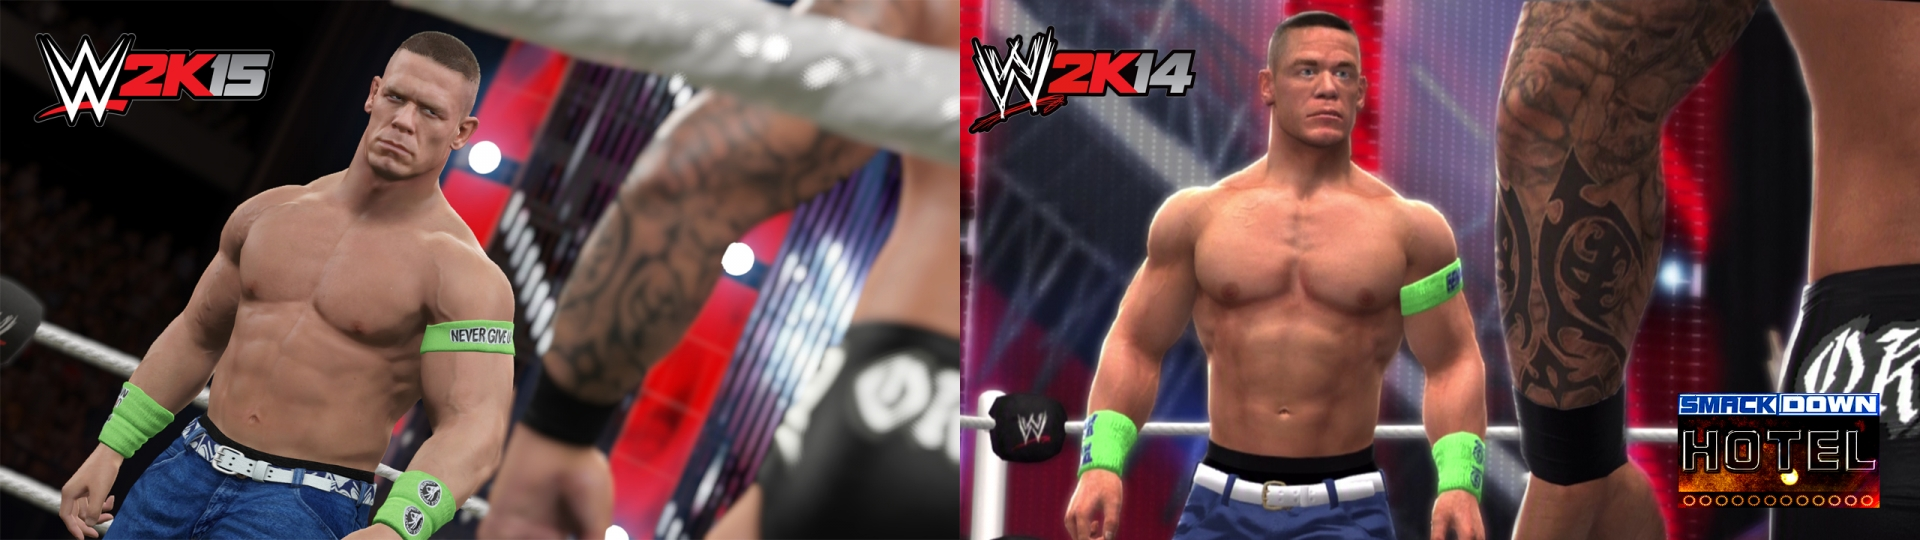 WWE 2K15 Vs 2K14 Comparison Screen